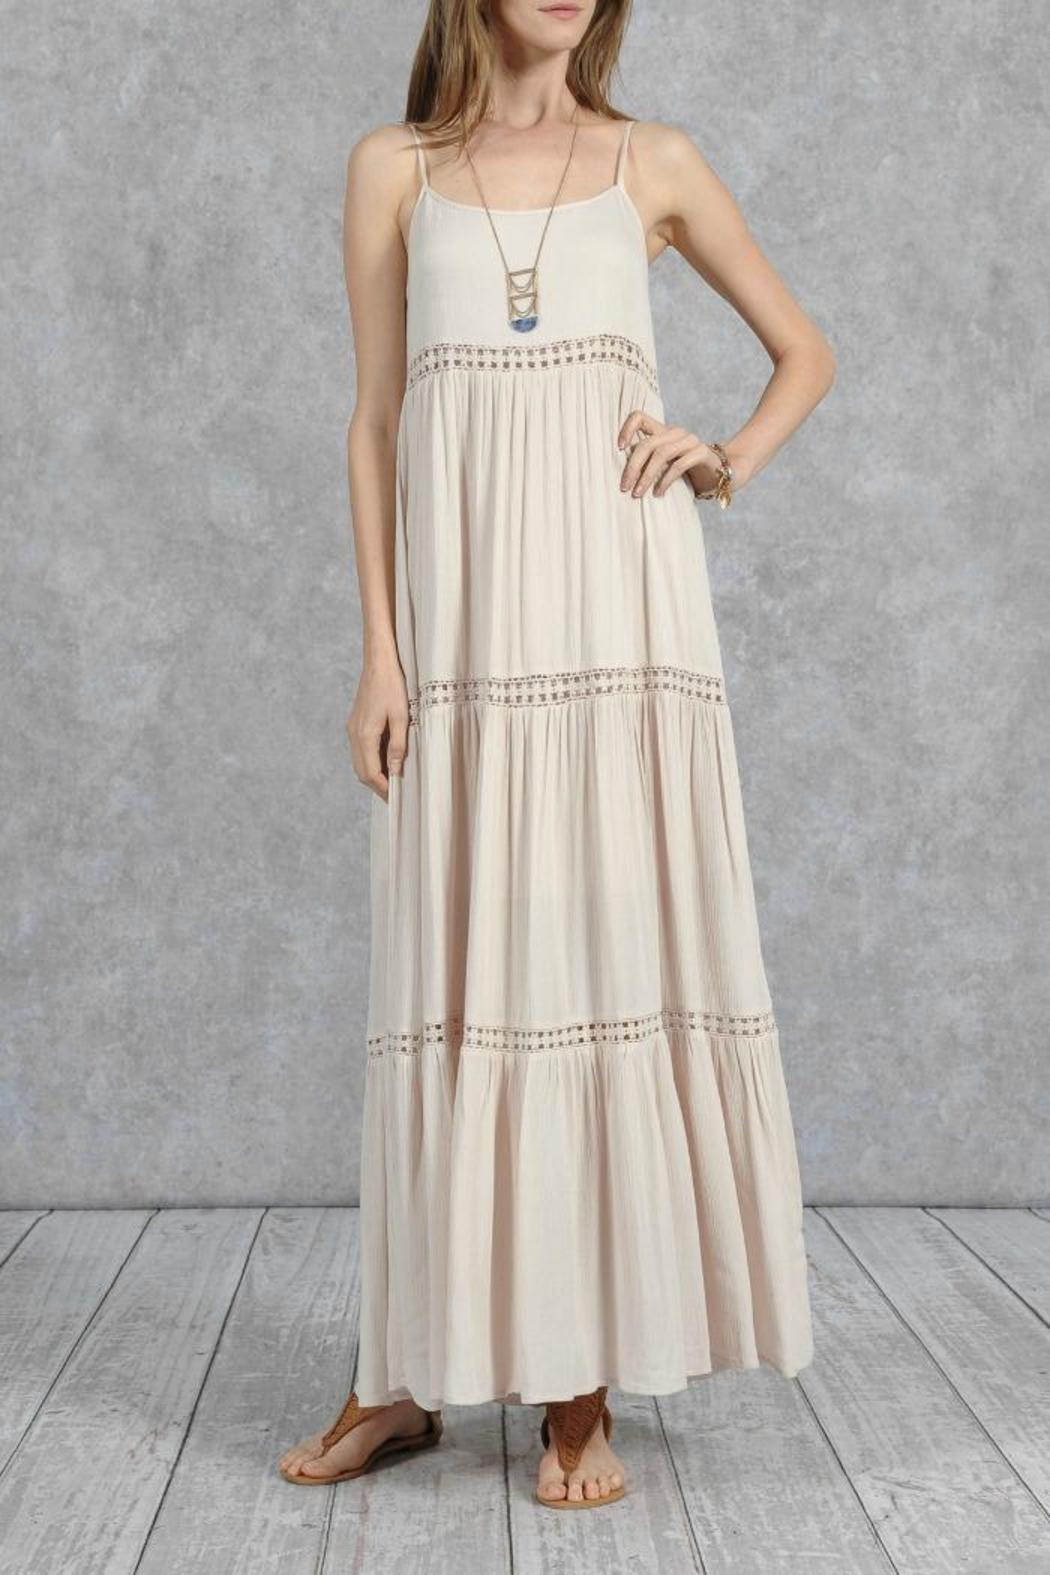 Hyfve Boho Maxi Dress From New Jersey By Making Waves